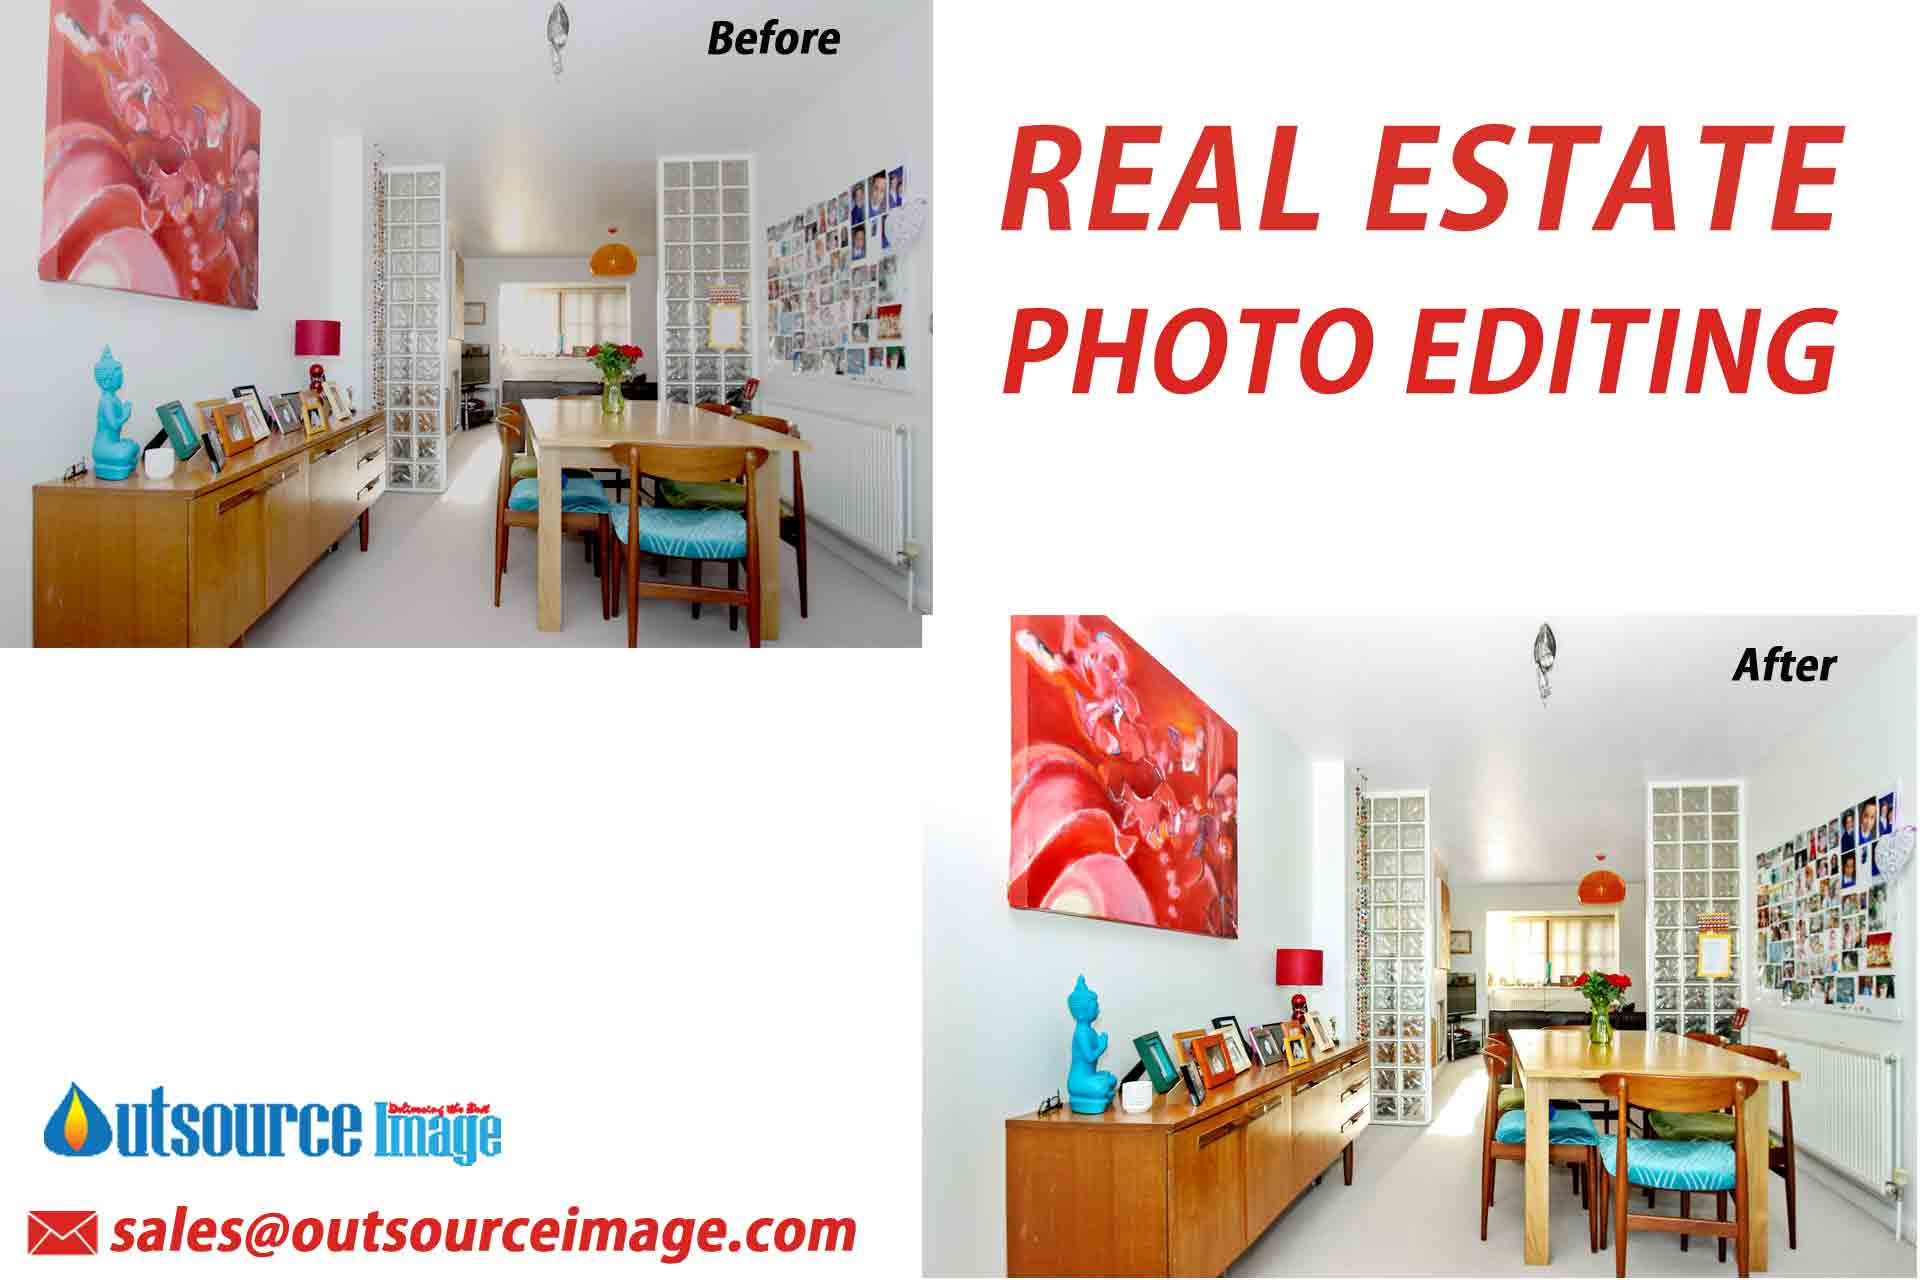 Editing services photographers